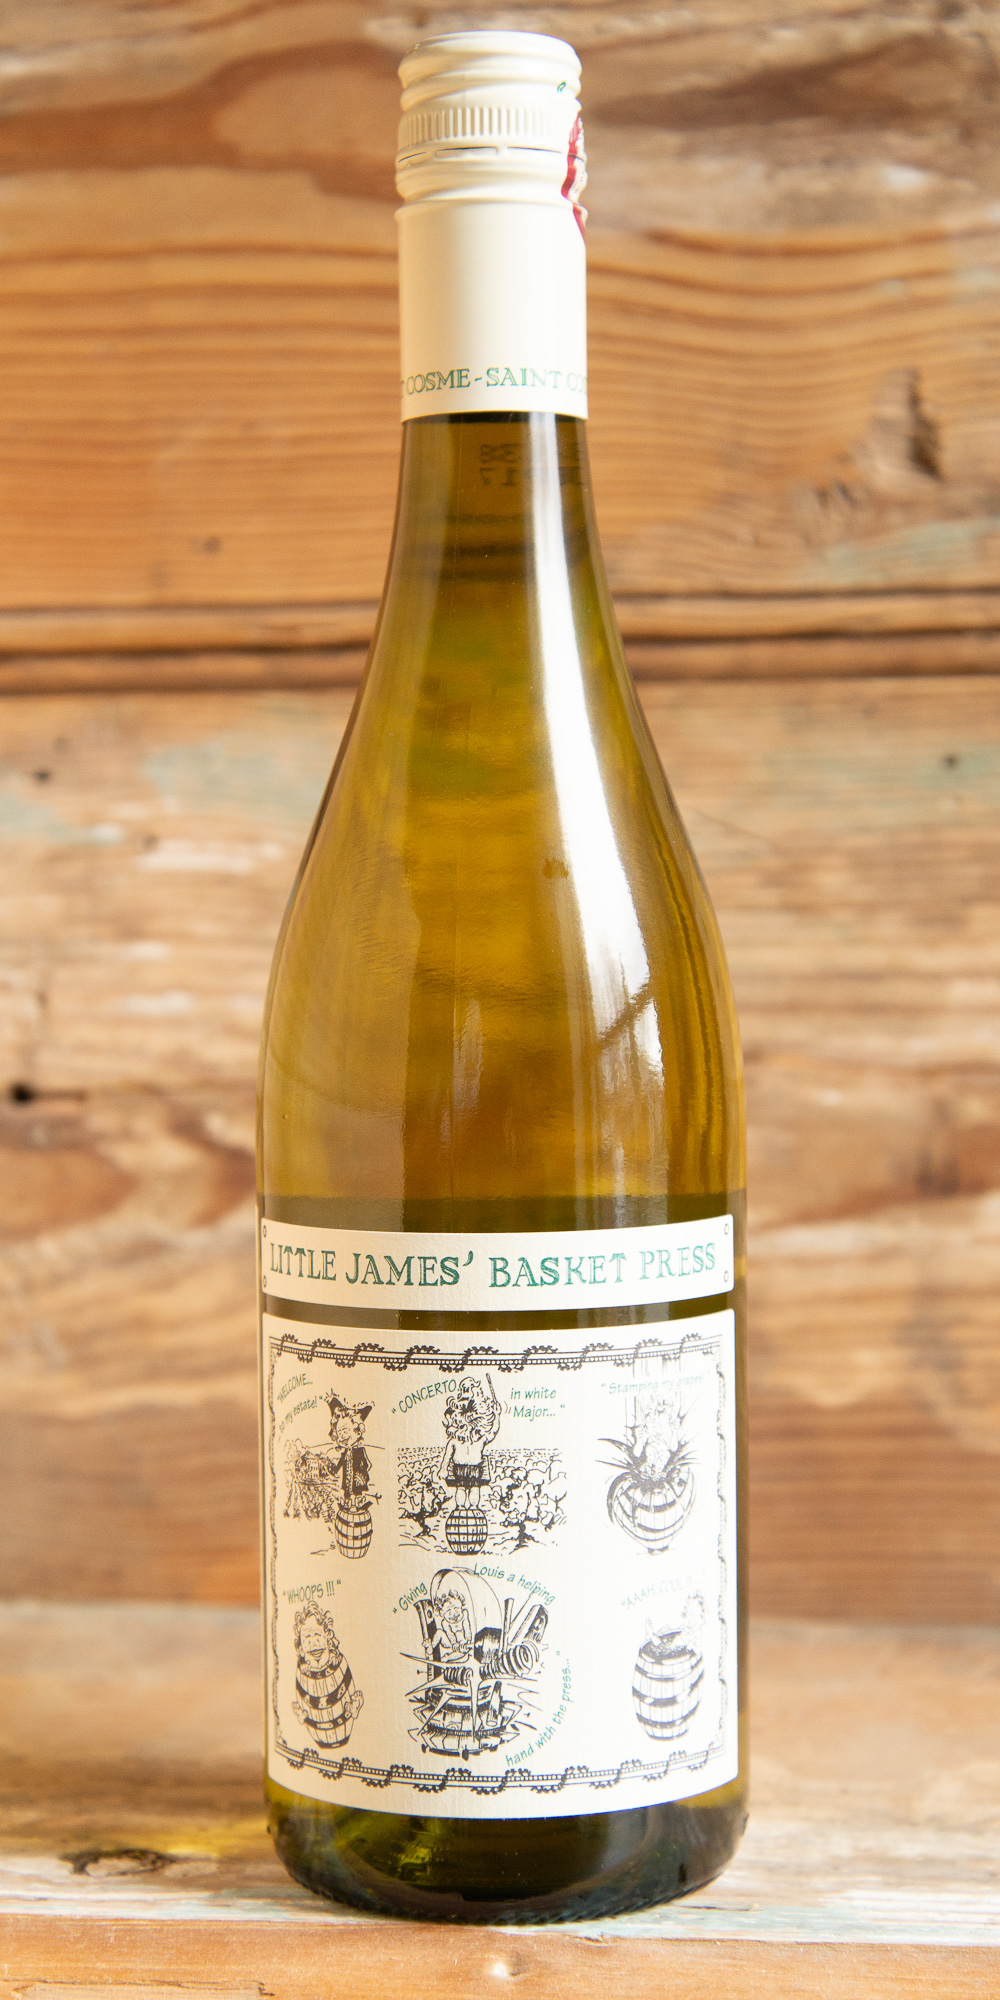 Saint Cosme Little James Basket Press Blanc 2017 - Origin: FranceRetail: $16.95 | Sale $14.35Château de Saint Cosme is the leading estate of Gigondas and produces the benchmark wines of this appellation. The property has been in the hands of the Barruol family since 1570. This unconventional blend of Sauvignon Blanc and Viognier can be used at the table like a crisp Pinot Grigio or a zippy Marlborough Sauvignon Blanc. The Sauvignon Blanc brings acidity to the blend while Viognier provides fleshiness and attractive notes of stone fruit and flowers. Blending the two varieties results in an aromatic and fresh-tasting wine with aromas and flavors of peach blossoms, fennel, apricots, grapefruit, lychee fruit, and mangos. Try this wine with garden salads, ceviche, and grilled fish.50% Viognier, 50% Sauvignon Blanc